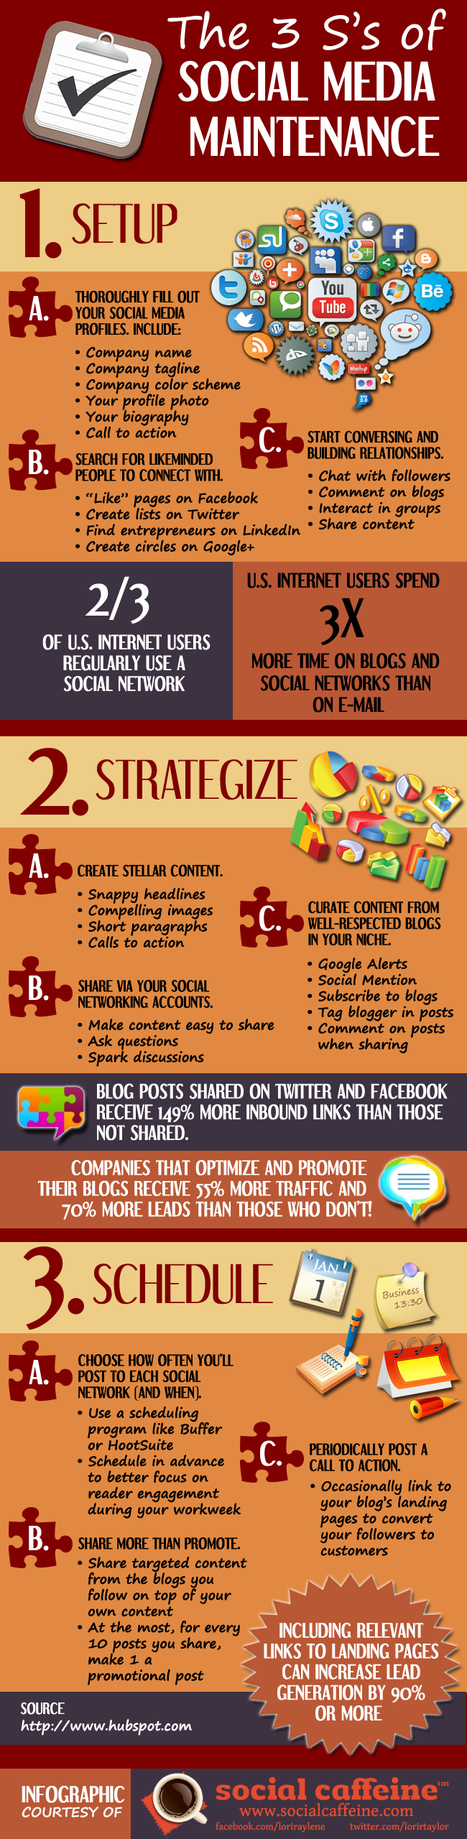 3 S's of Social Media: Setup, Strategize and Schedule [Infographic] | AtDotCom Social media | Scoop.it